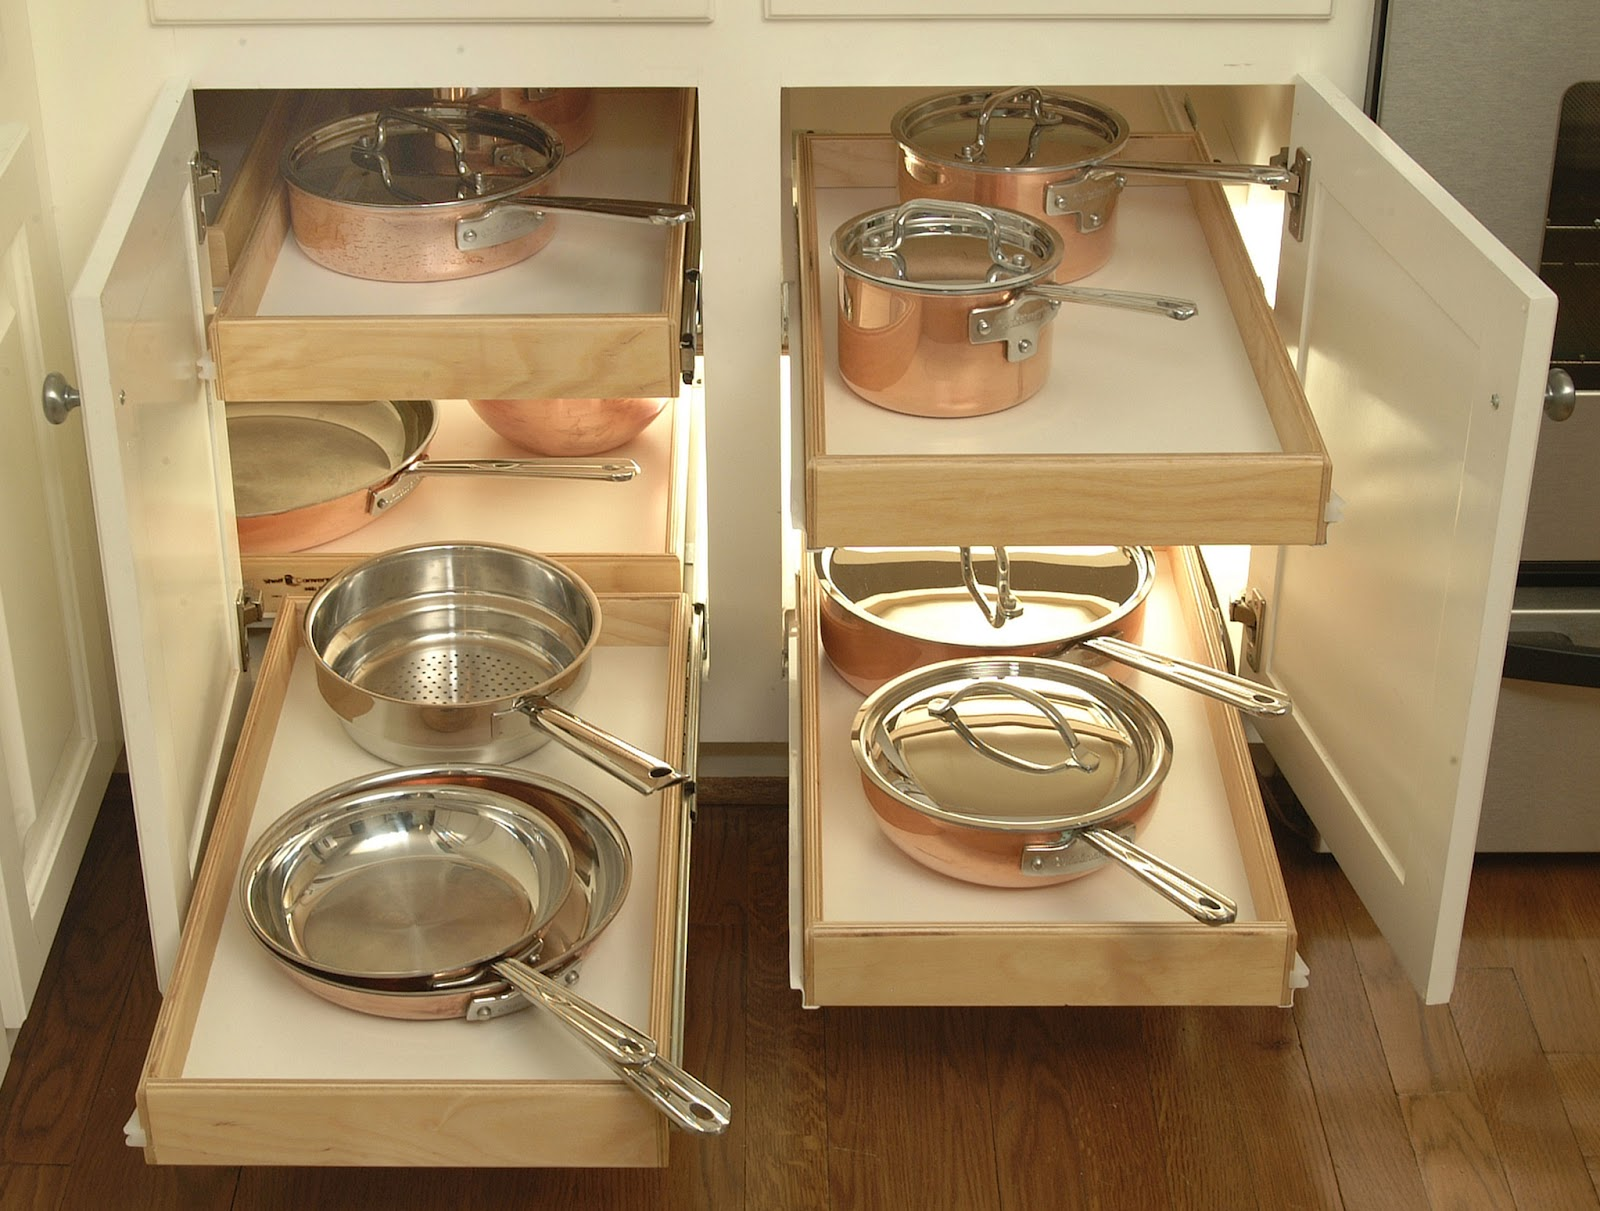 diy-pull-out-pots-and-pants-storage-for-kitchen-cabinet-ideas-jpg-furniture_diy-storage-closet-ideas